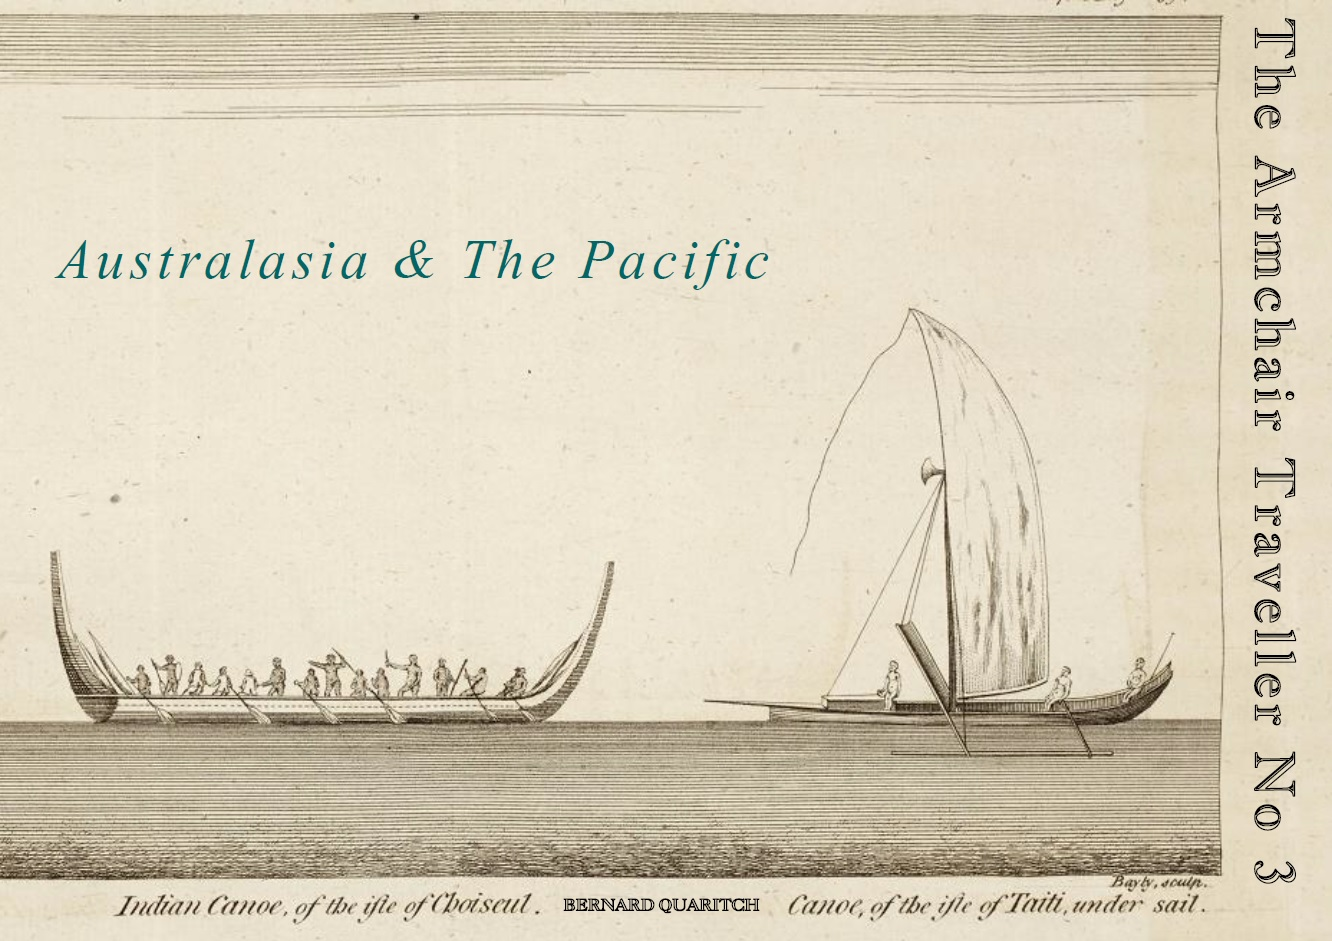 The Armchair Traveller: Australasia & The Pacific